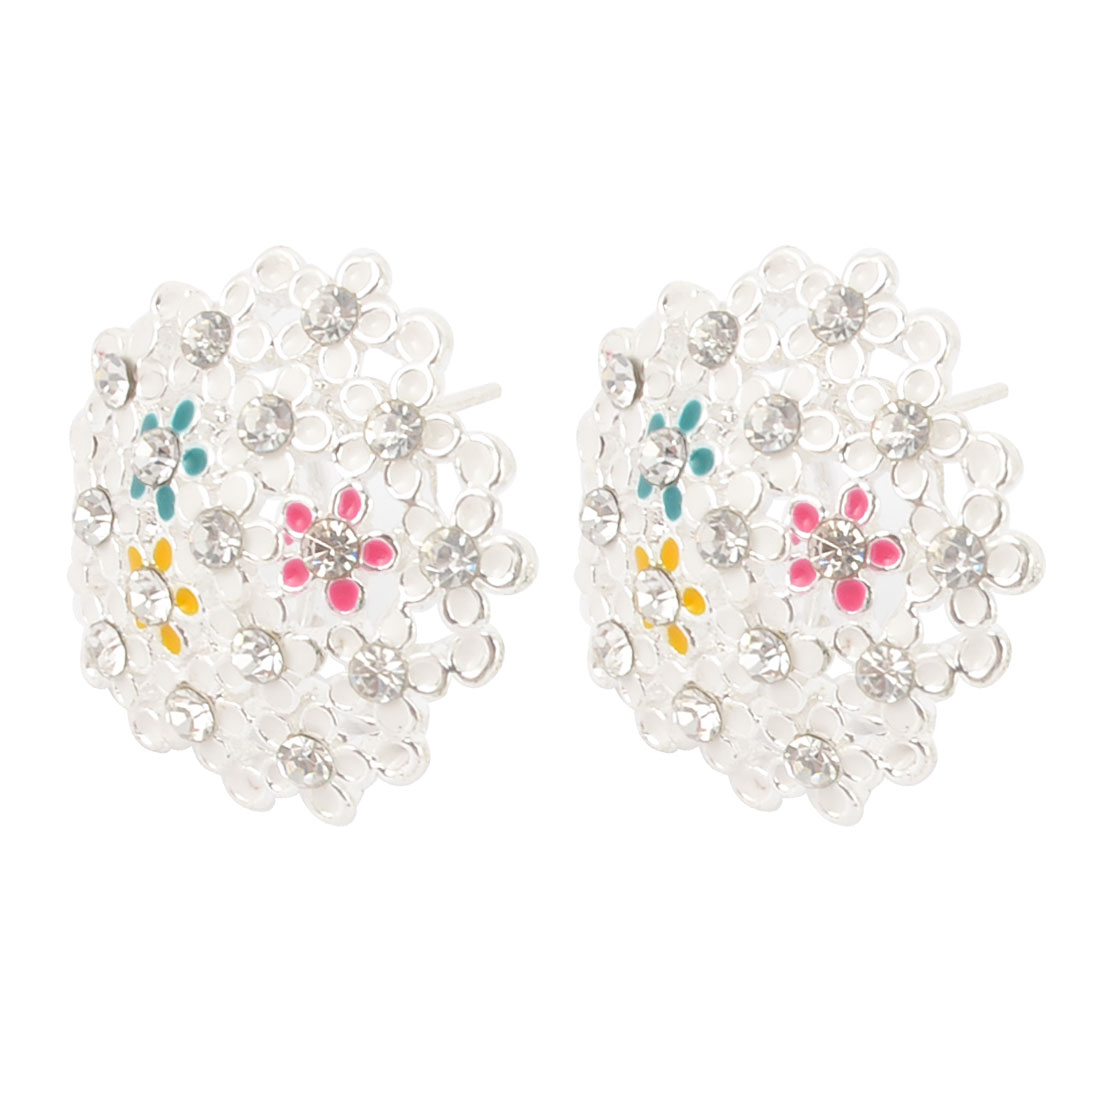 Lady Girls Faux Rhinestone Detail Flower Design Ear Stud Earrings Pair